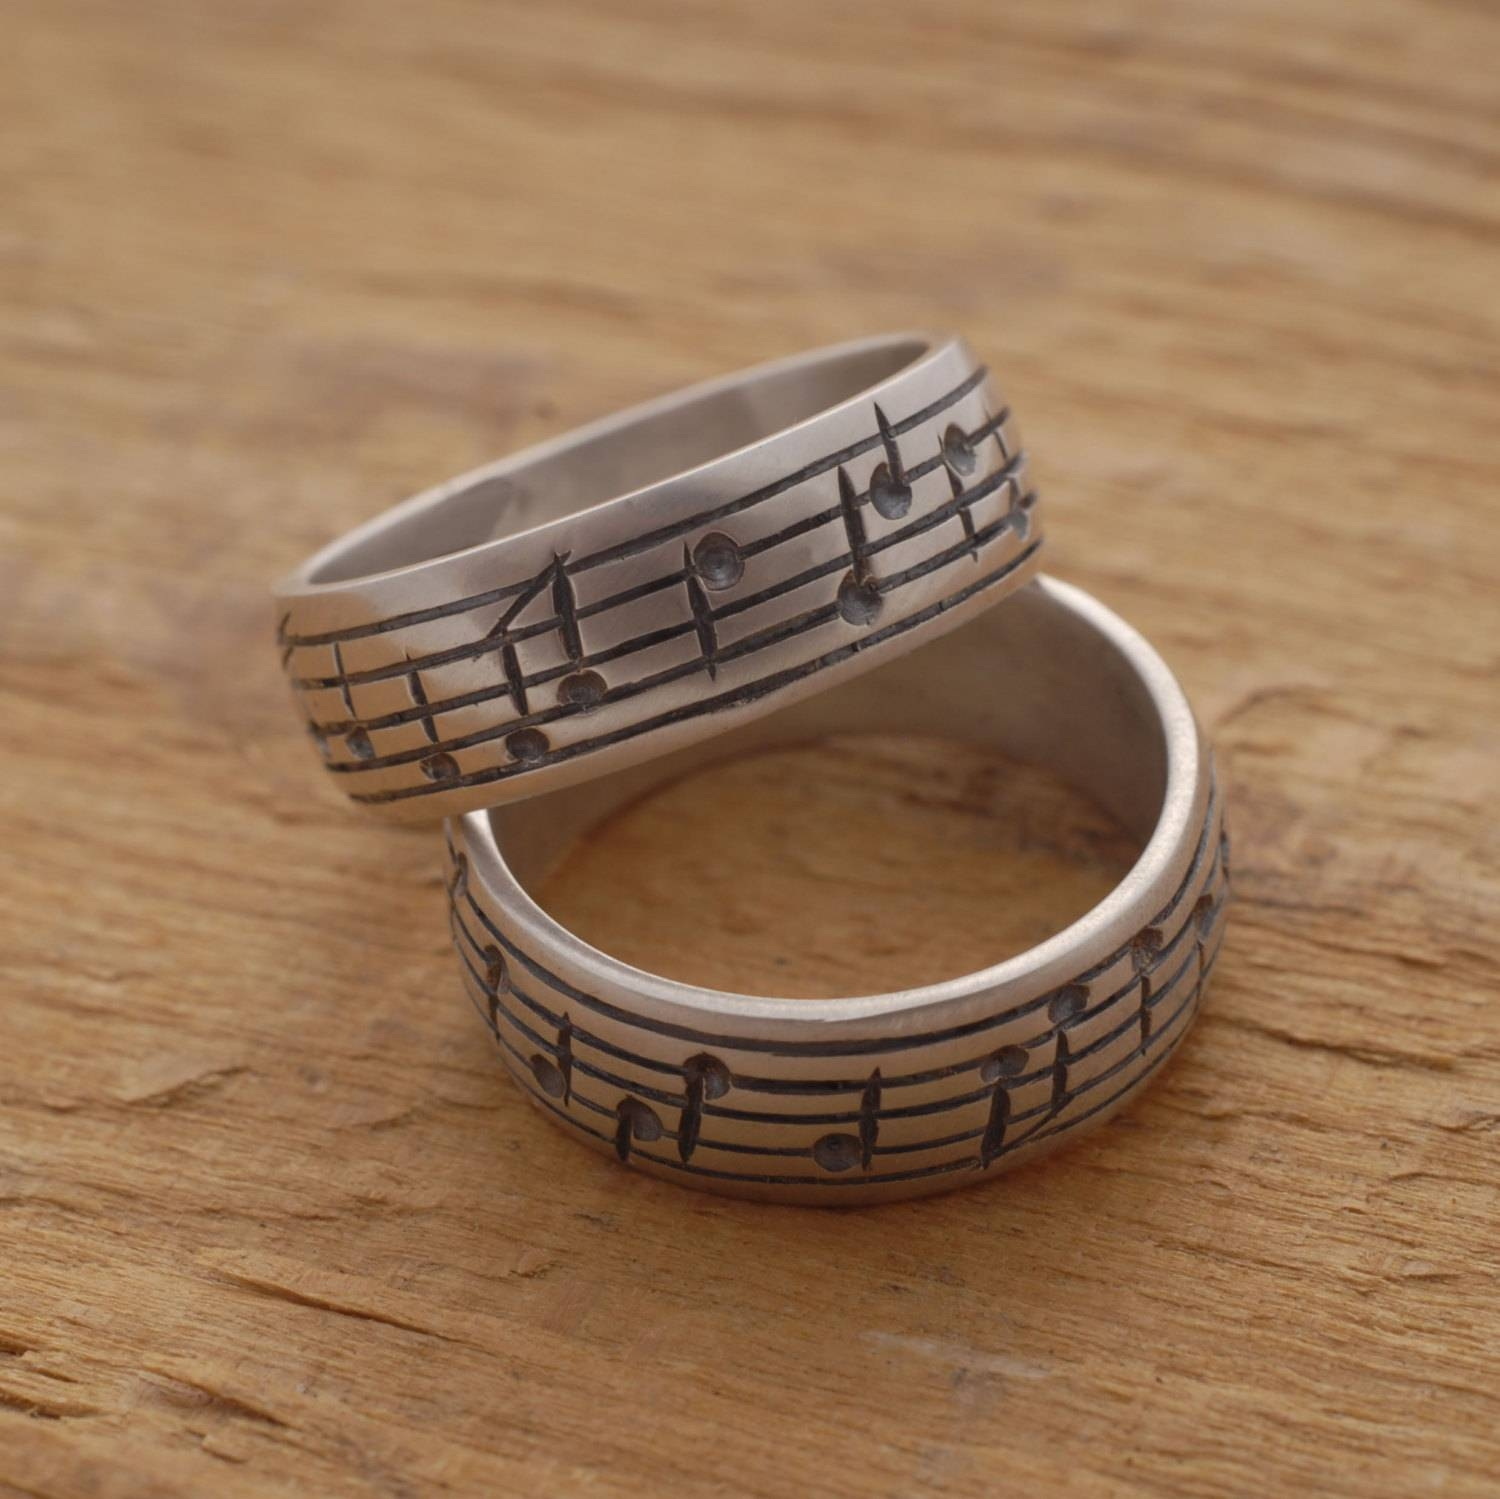 Music Note Wedding Ring Set His And Her Sterling Silver Regarding Music Wedding Rings (View 7 of 15)